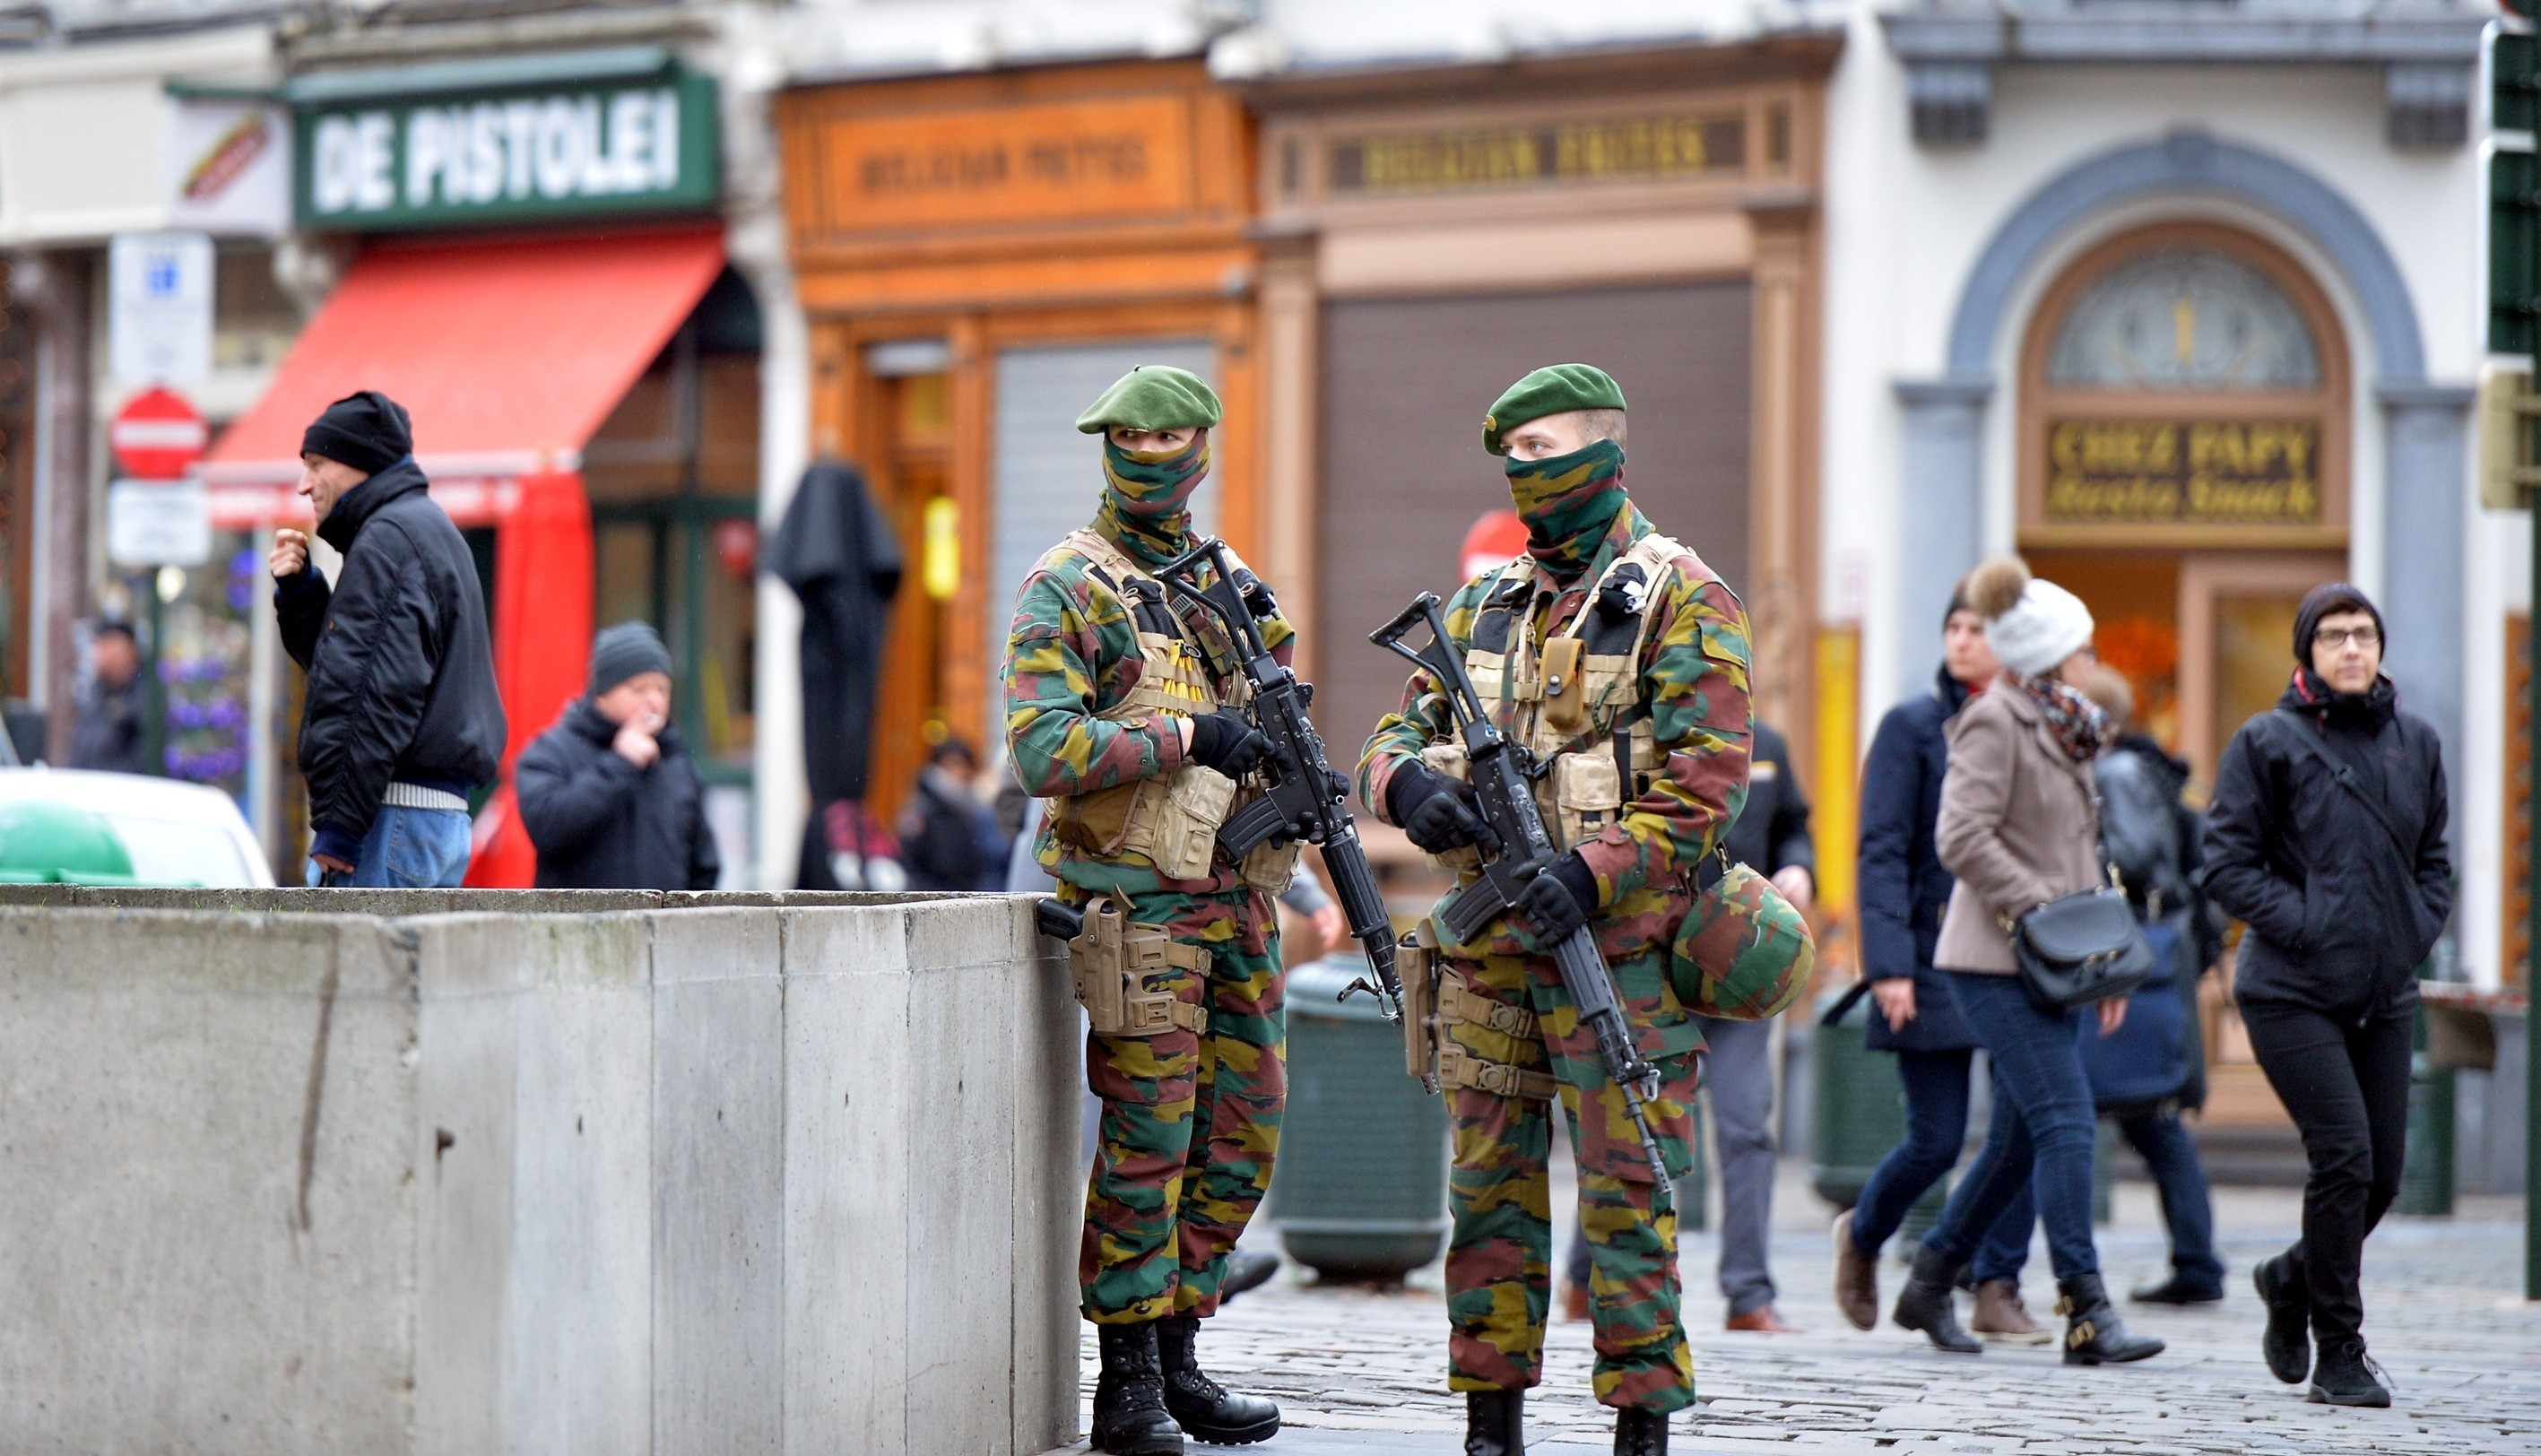 Security forces of Belgium stand guard as two people arrested on suspicion of terrorism in Brussels on Dec. 29, 2015